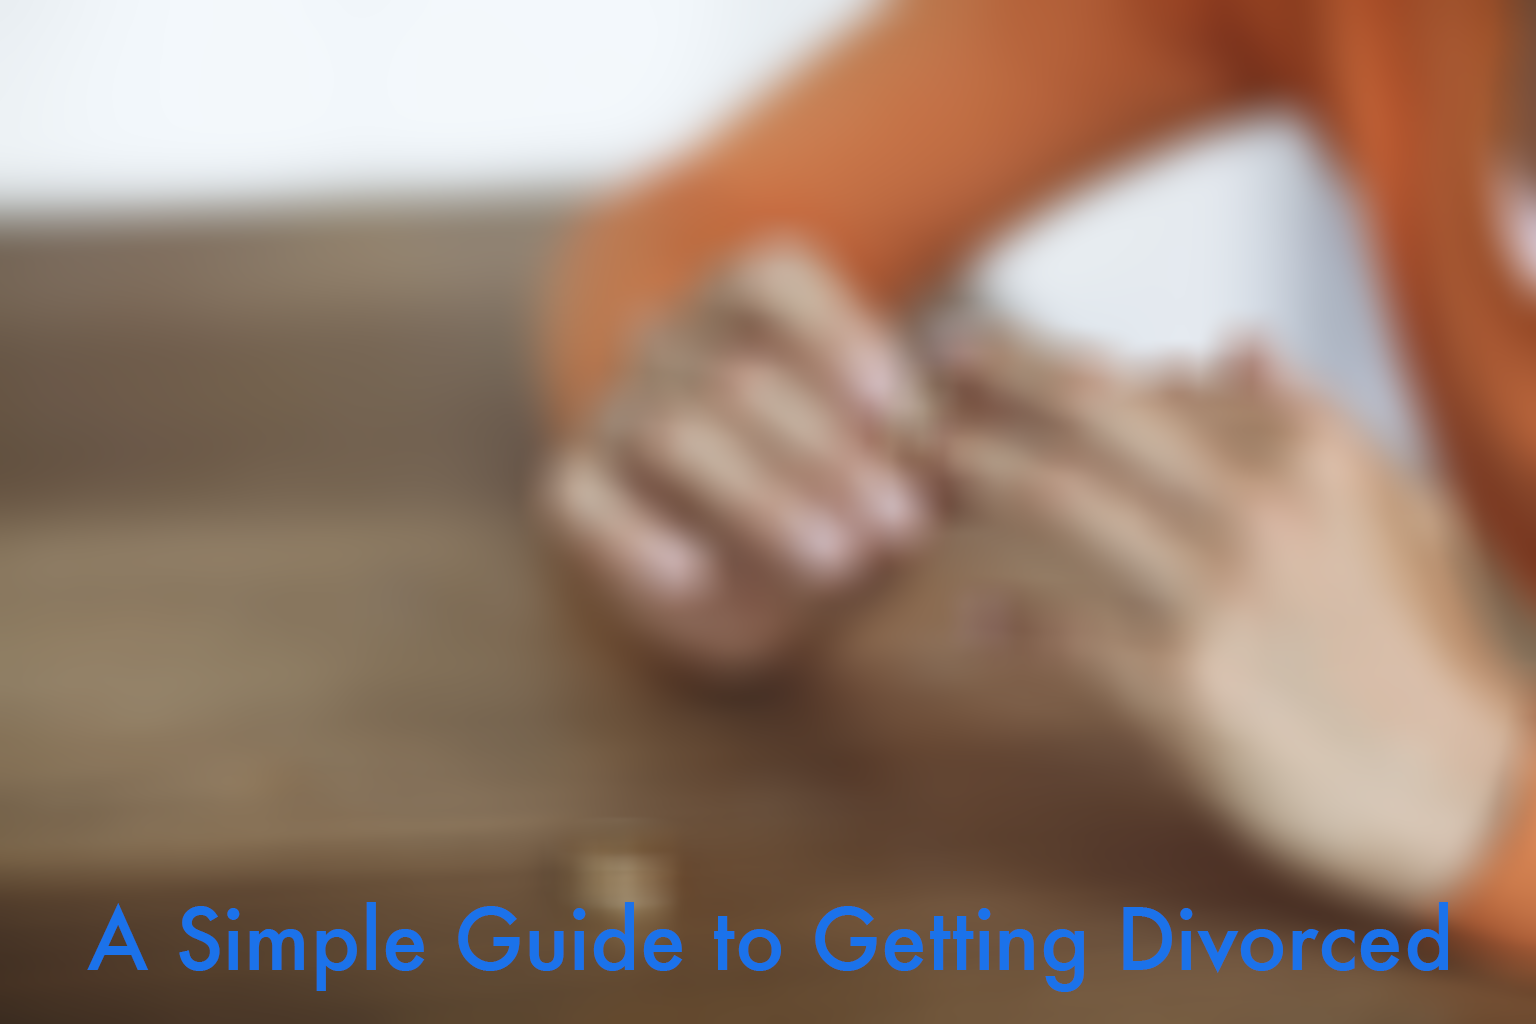 Simple Guide to Getting Divorced